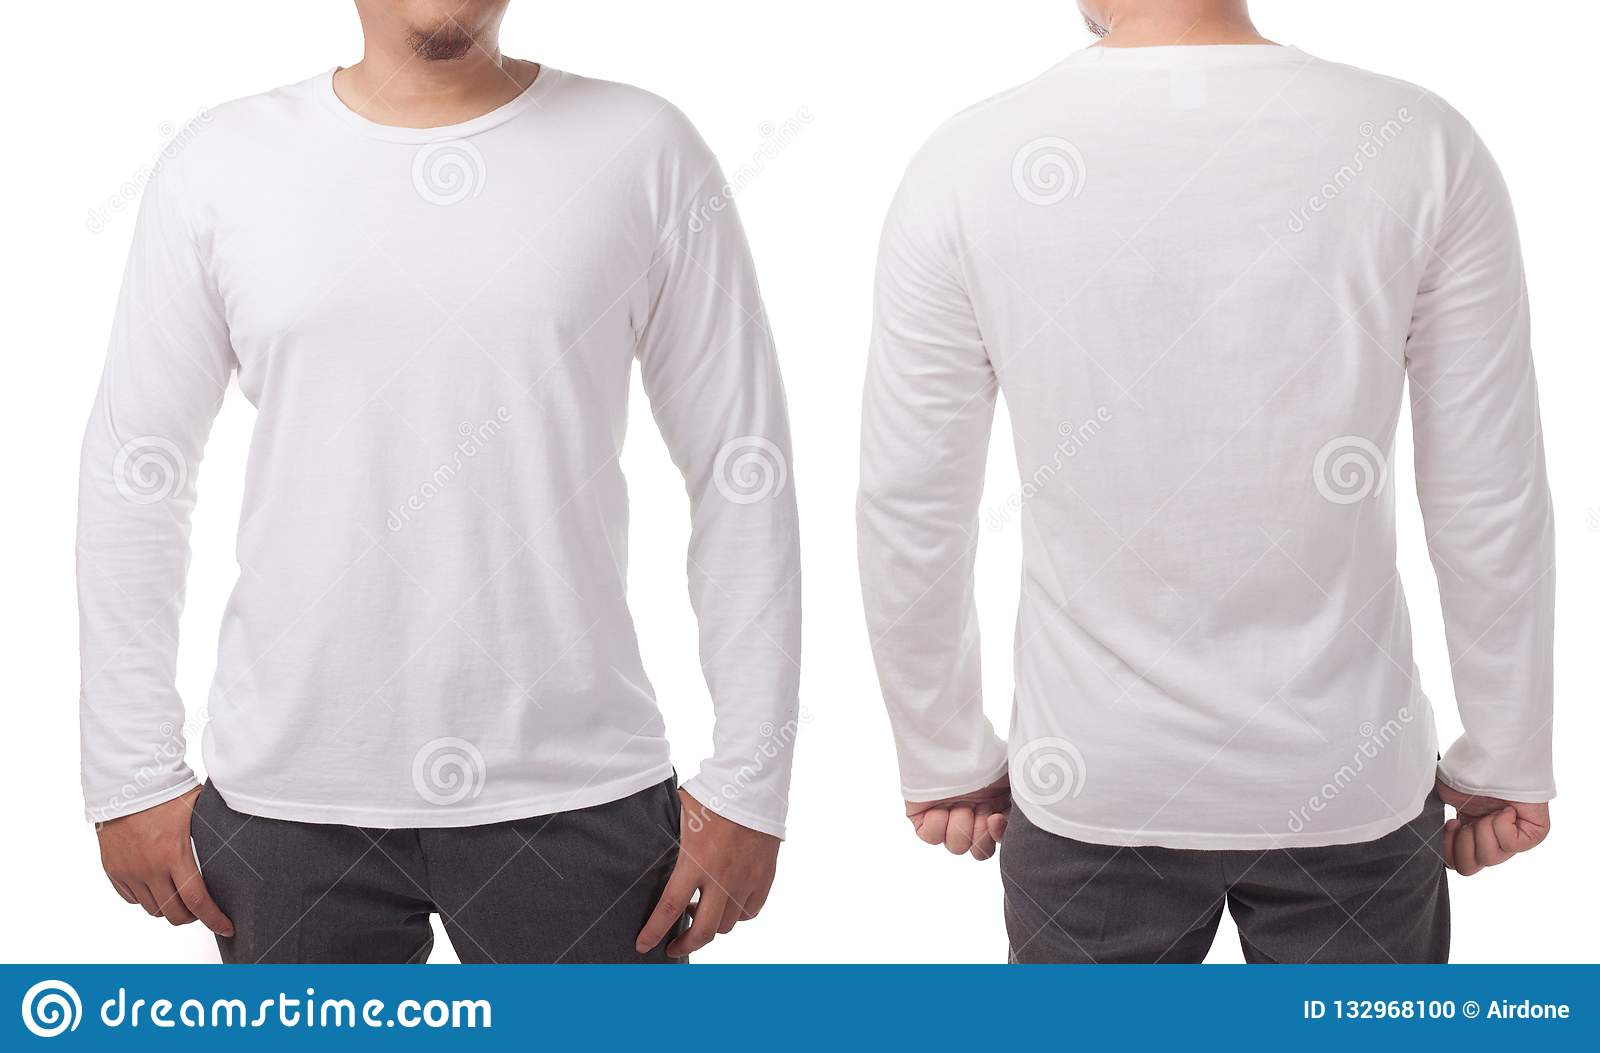 763f29d61359 White Long Sleeved Shirt Design Template Stock Photo - Image of ...